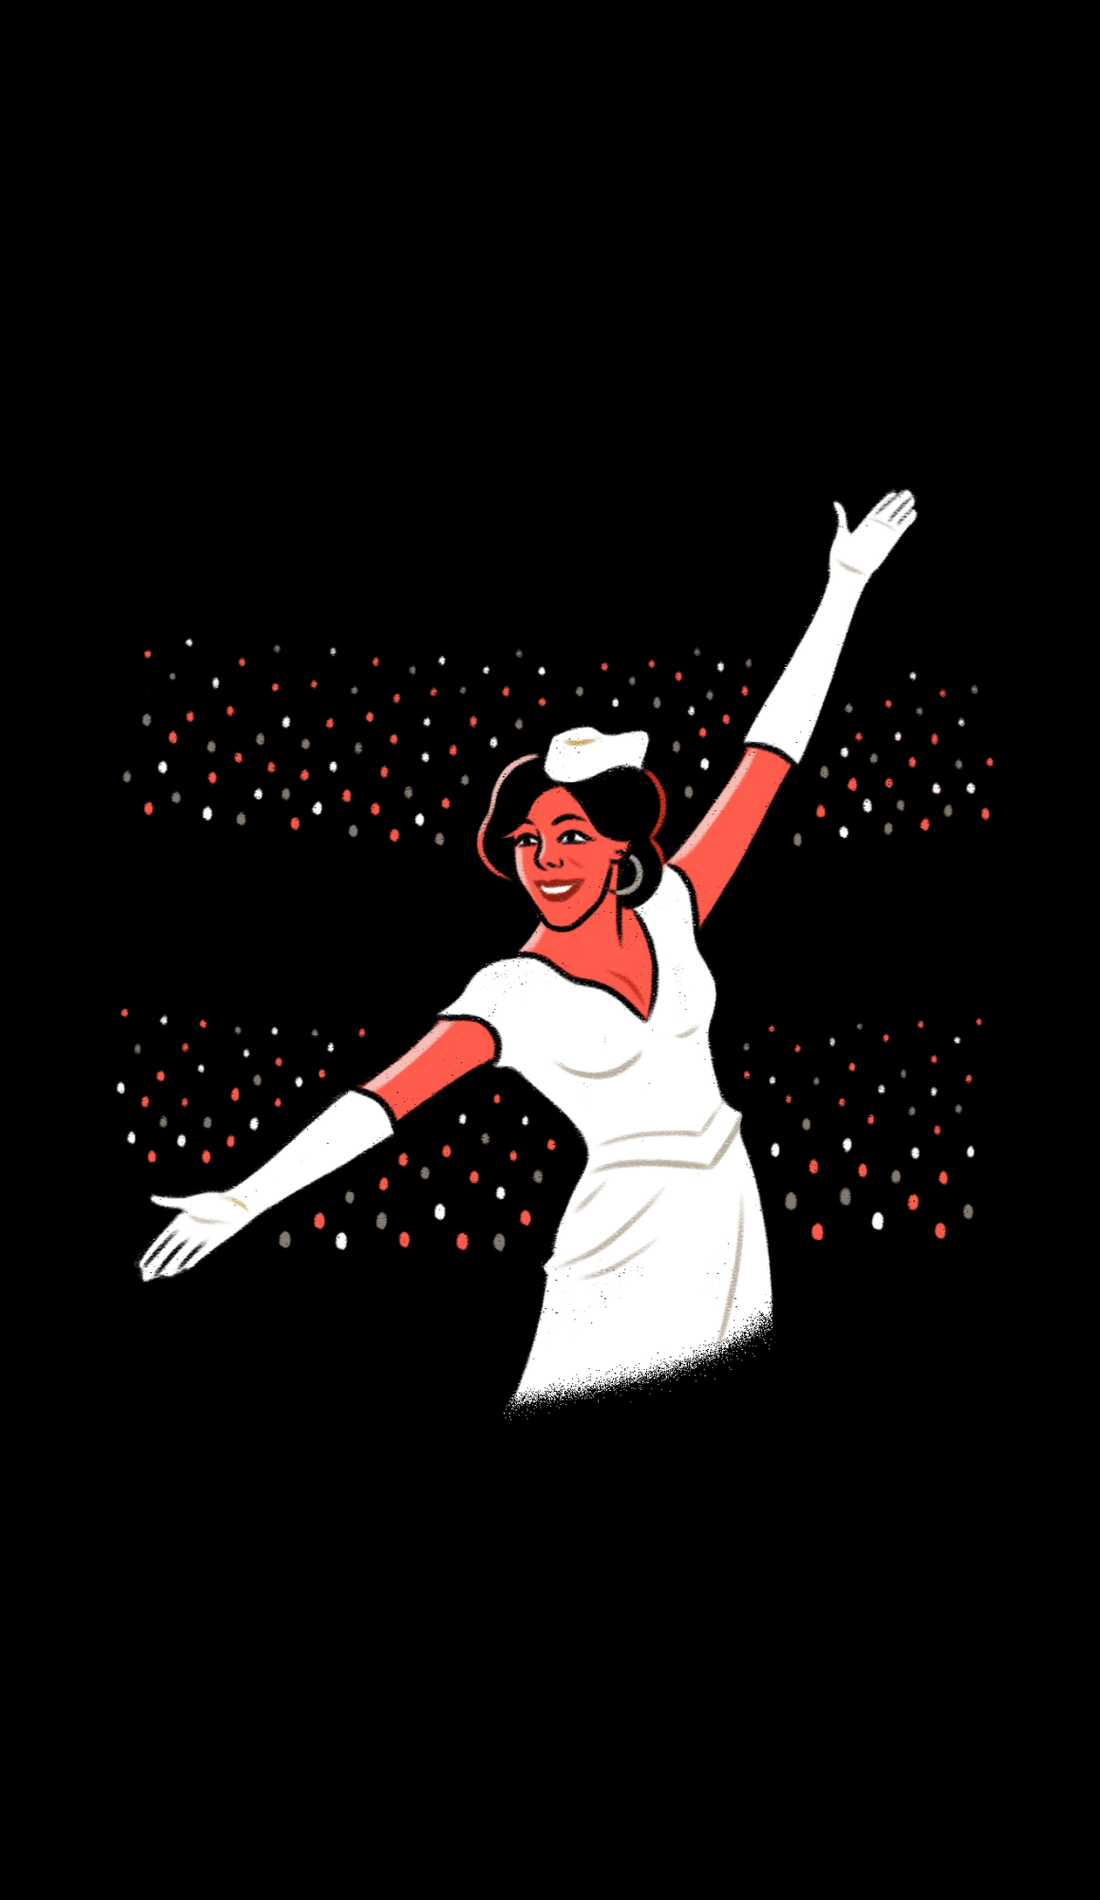 A Dear Evan Hansen live event